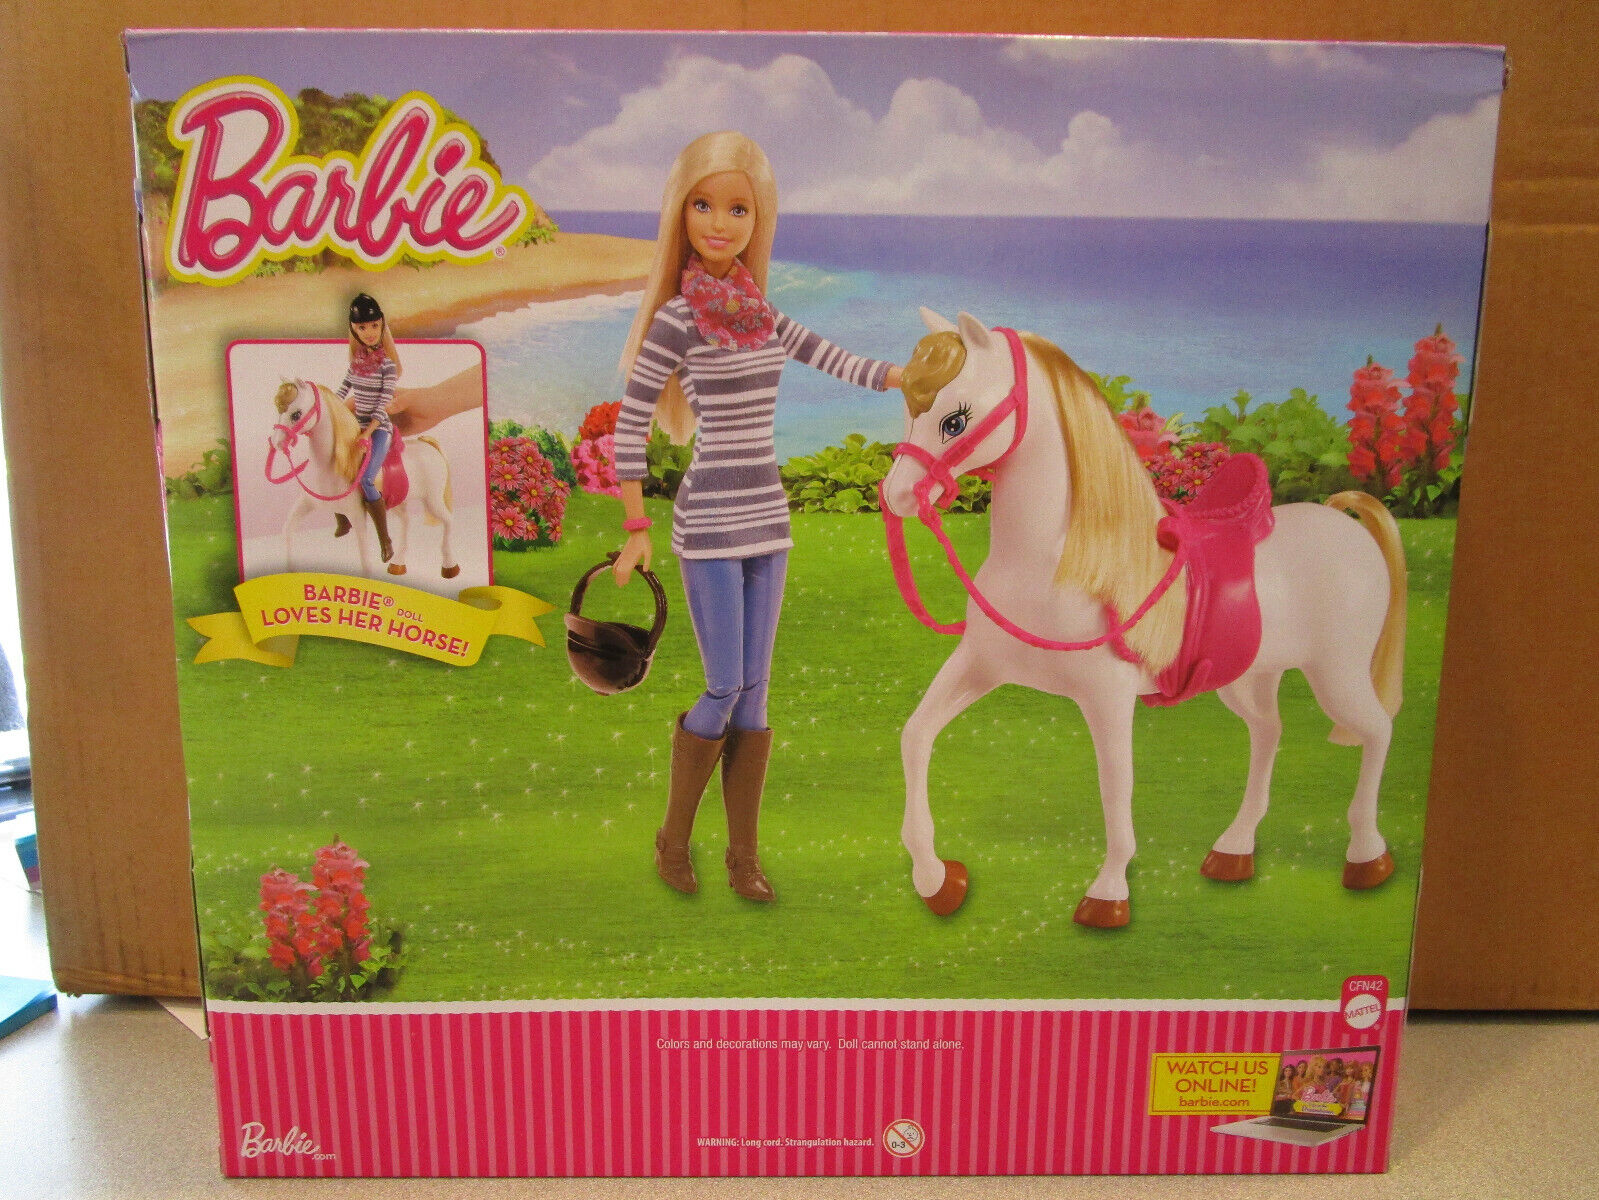 Barbie Doll Loves Her Horse, CFN42, 2014, NRFB - $49.99